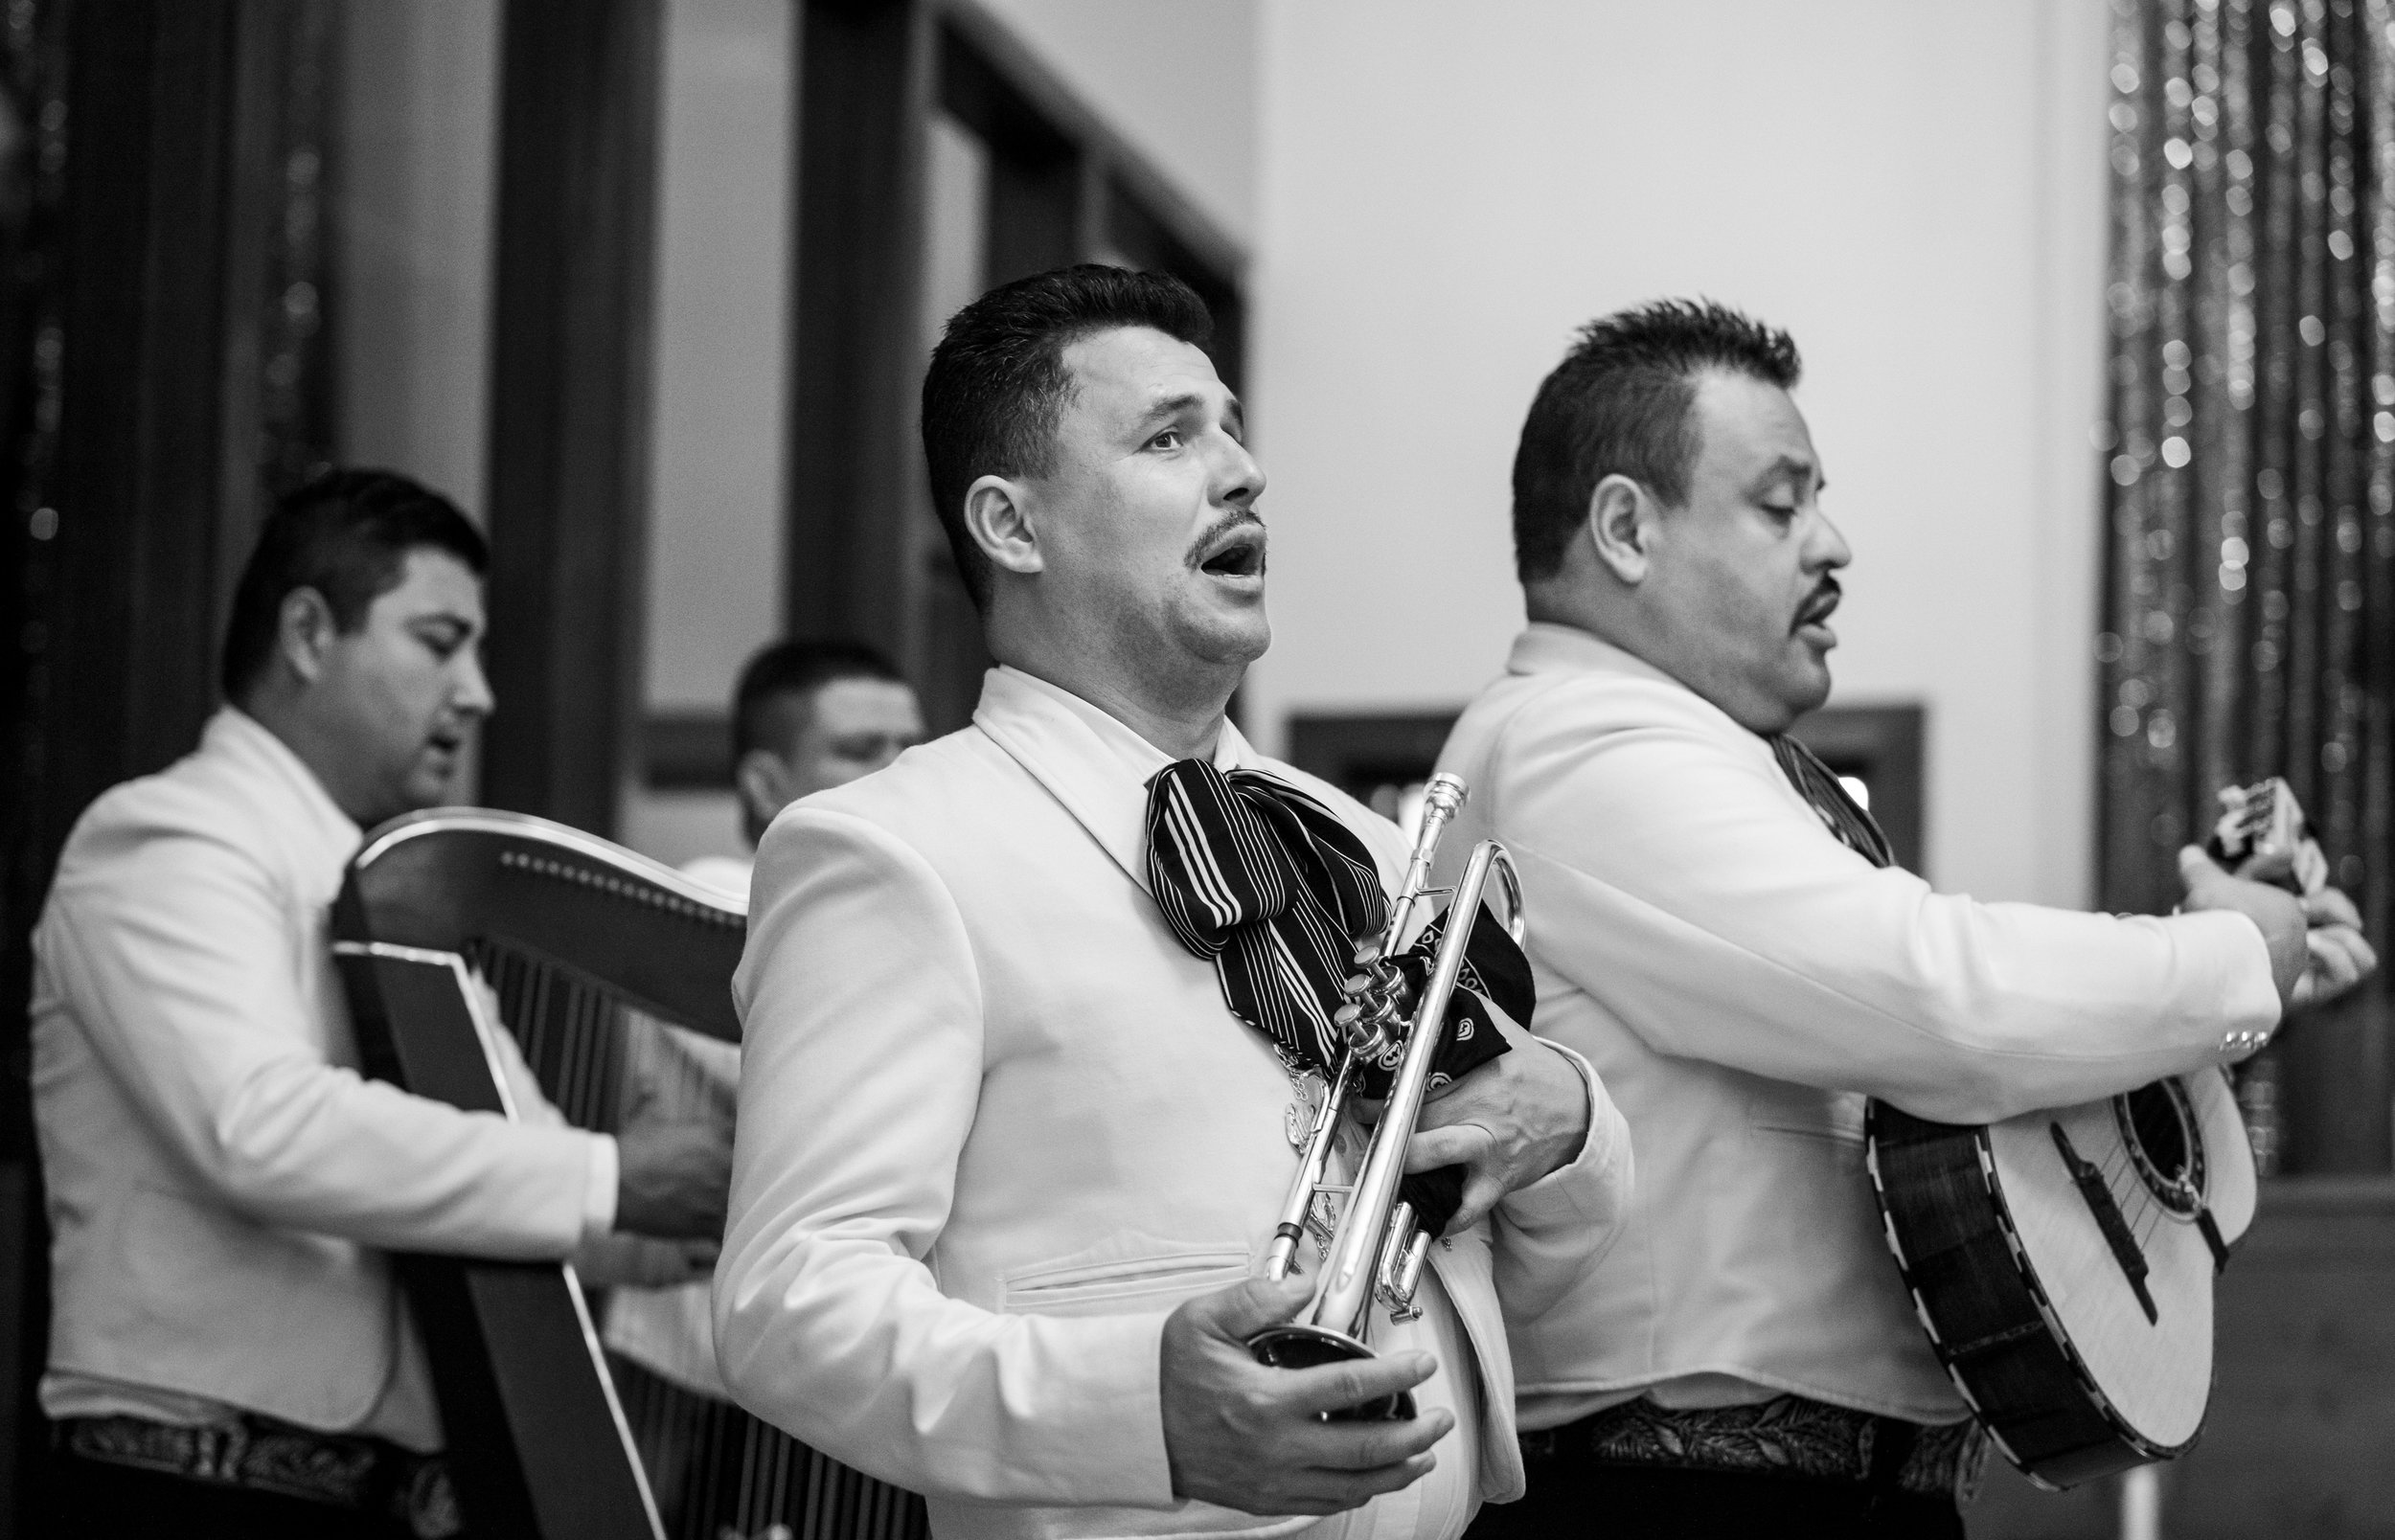 A mariachi group performing during Adriana Gonzalez's quinceañera at Our Lady of Guadalupe Church in Sacramento, California